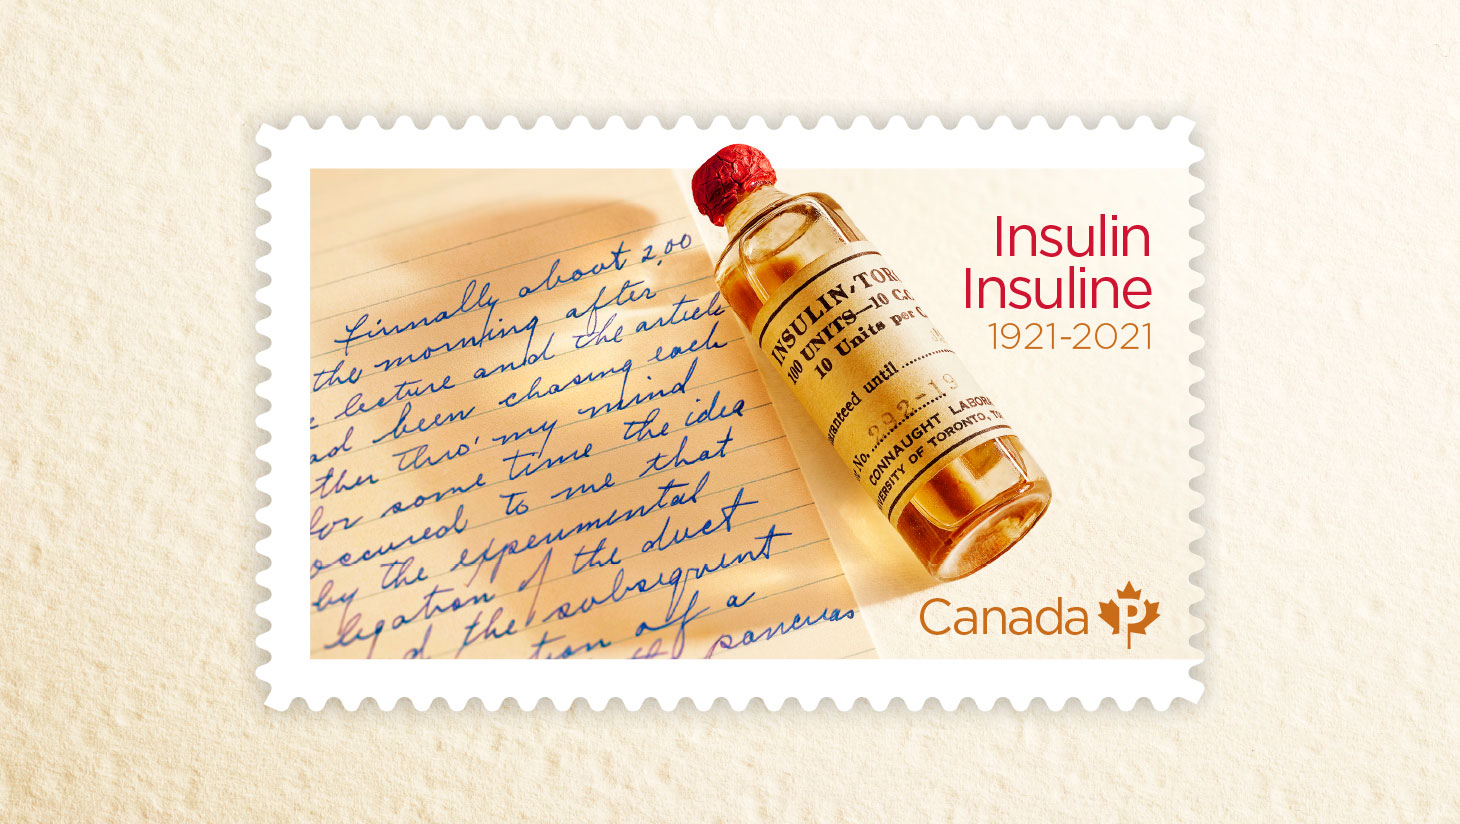 Subplot celebrates the 100th Anniversary of the Discovery of Insulin